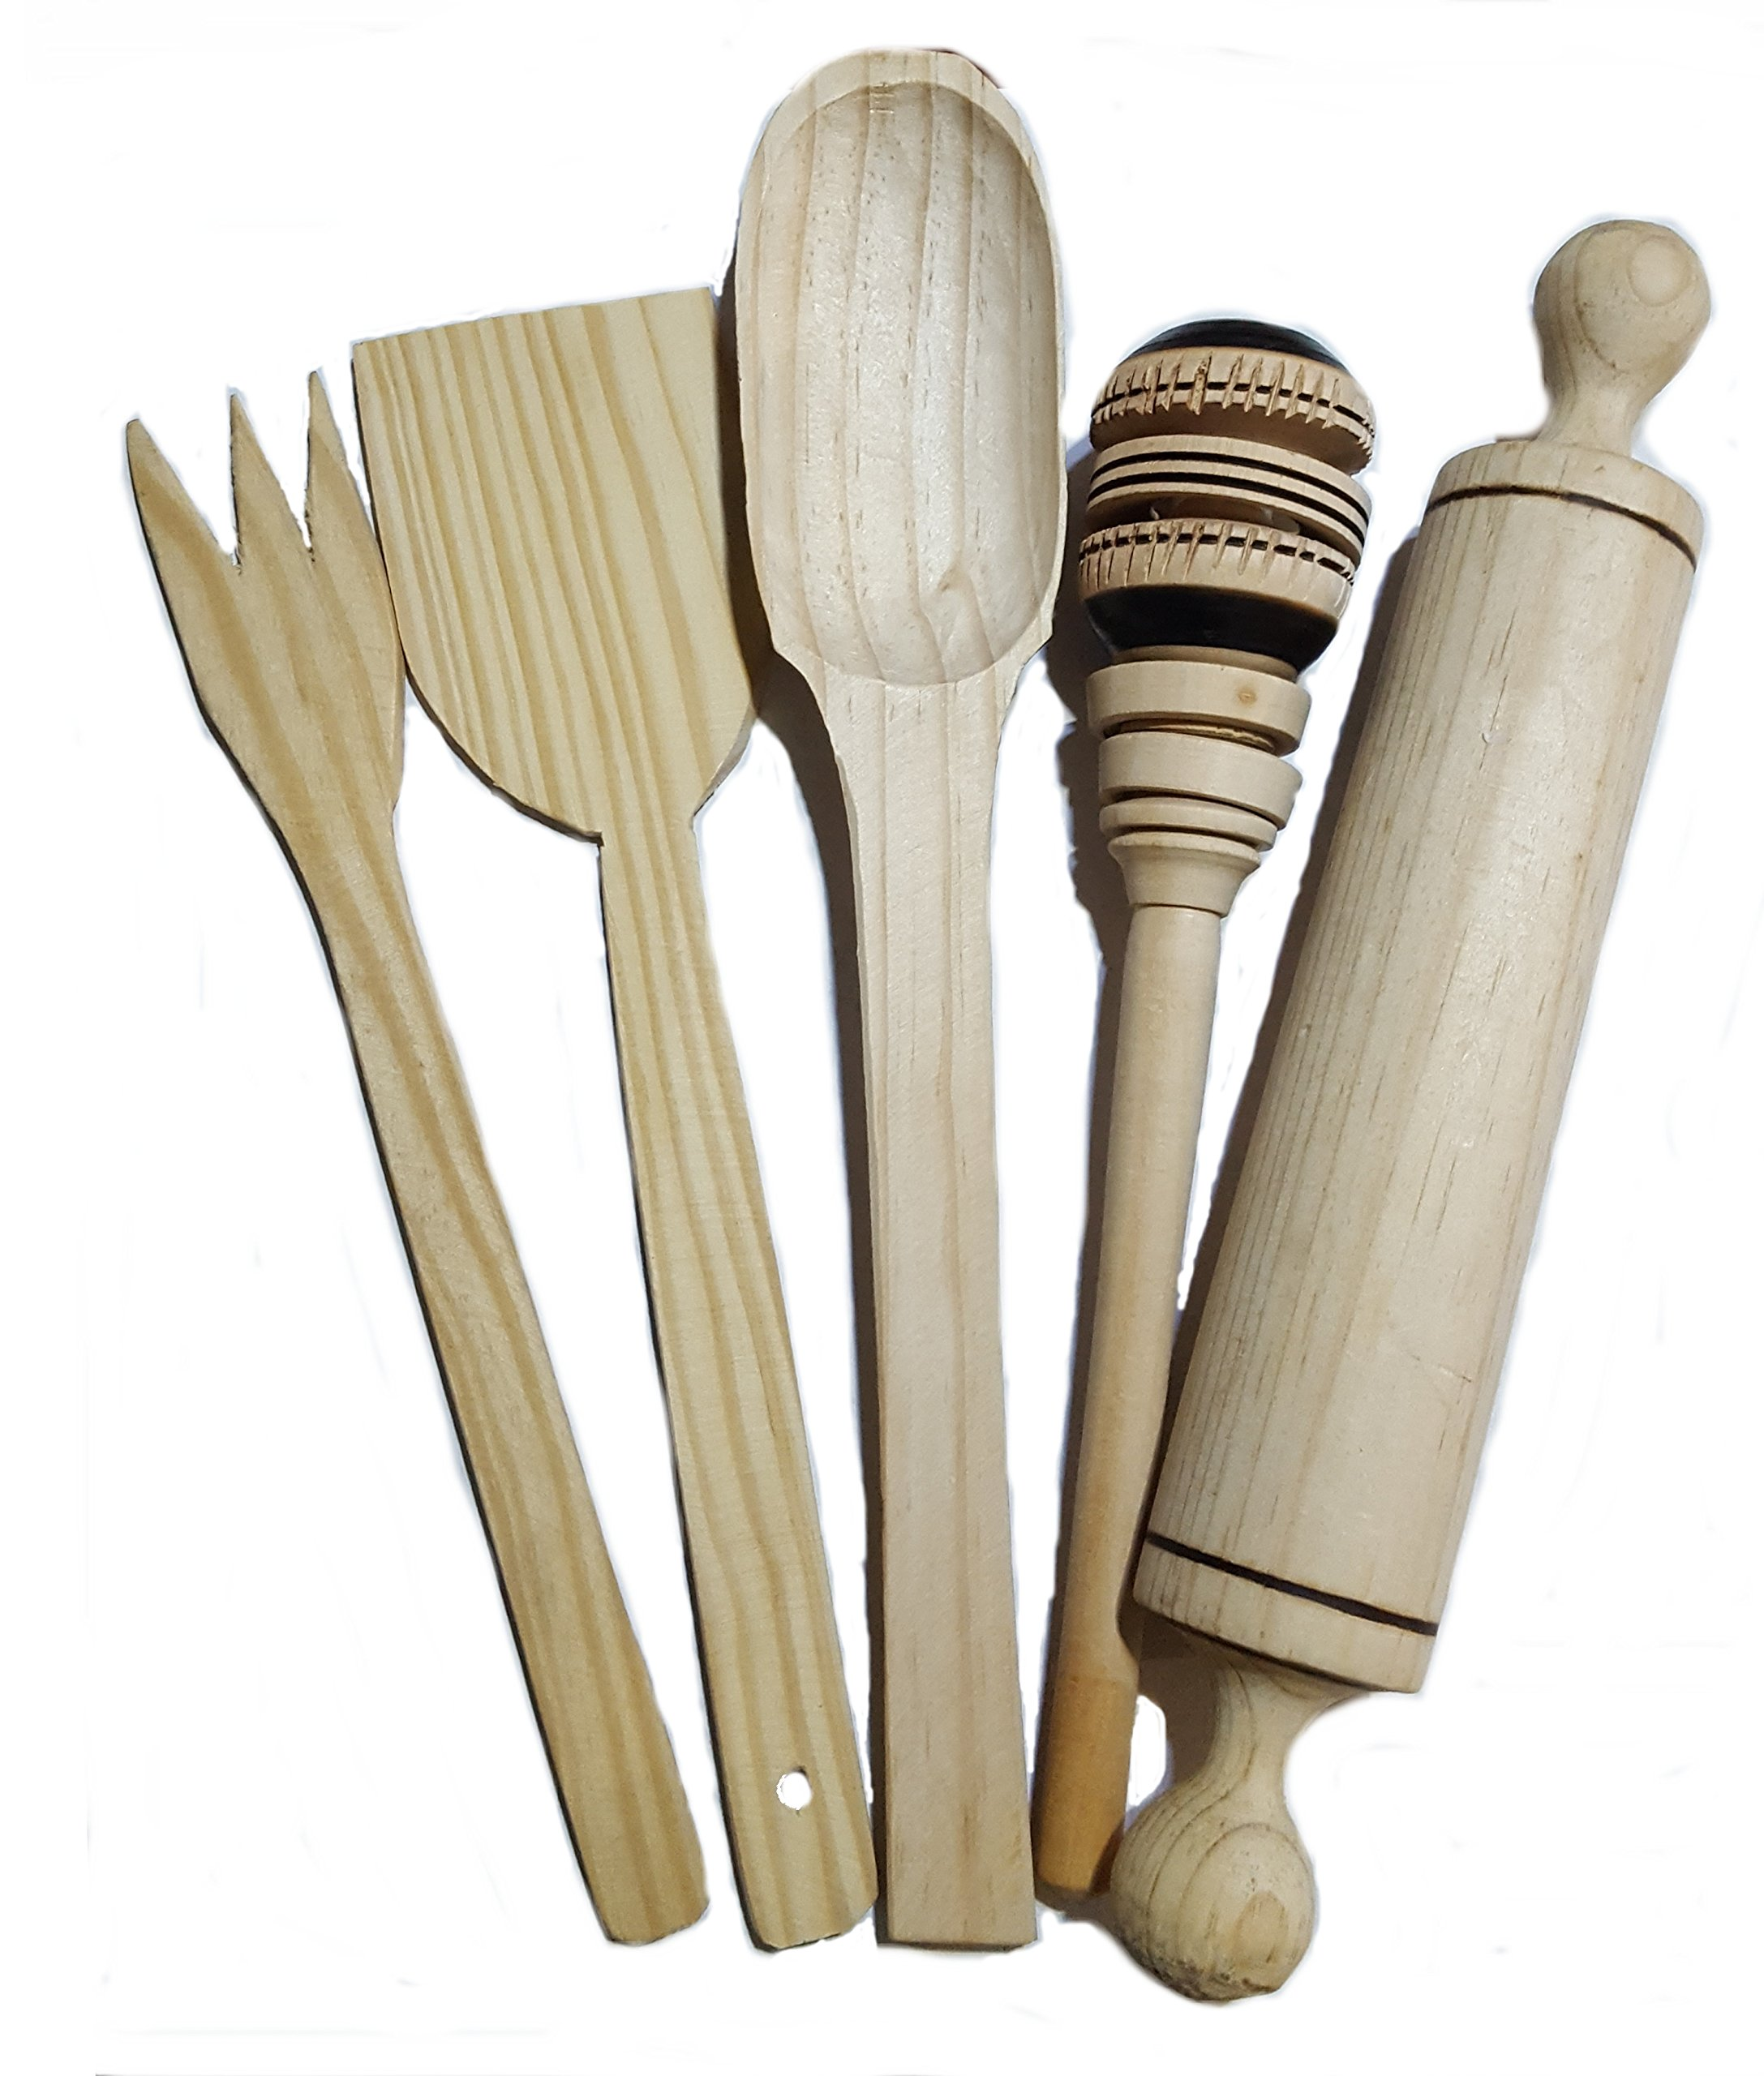 Traditional Mexican wooden cooking set 5 pieces